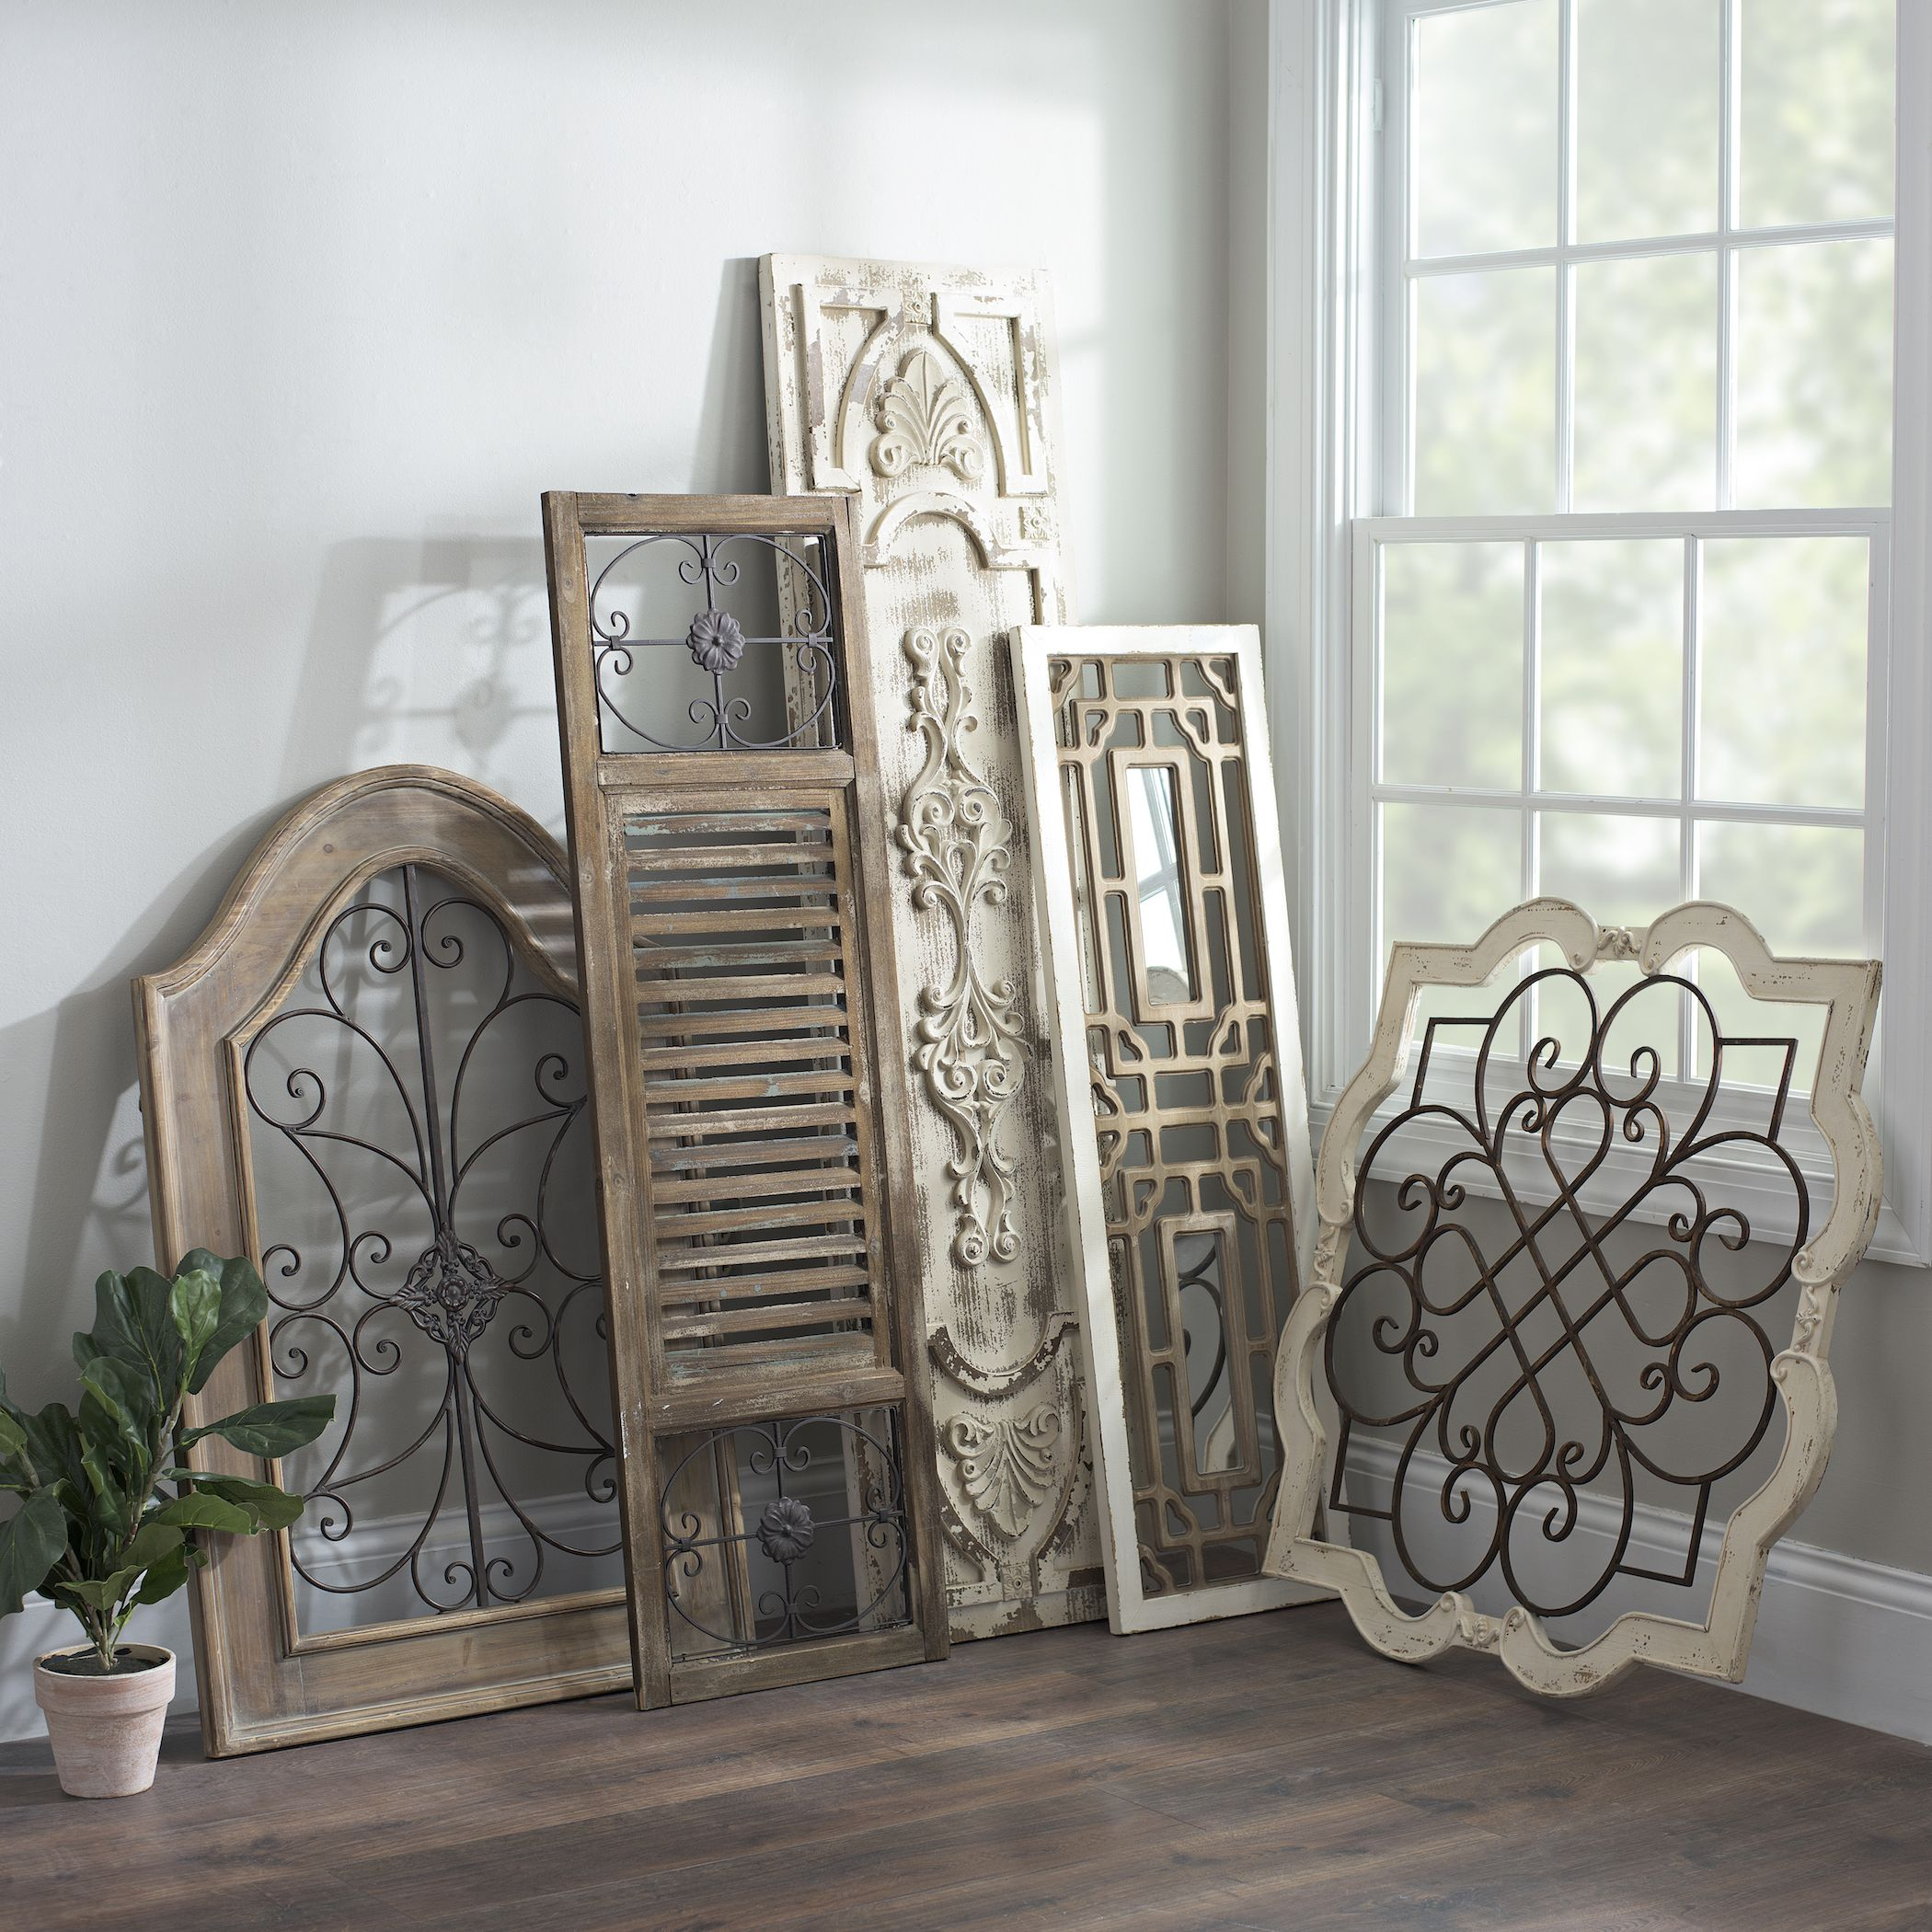 Get Great Online Deals On Sale Wall Decor At Kirklandu0027s! Shop Discount Wall  Decor And Save Big On The Best Wall Prints!